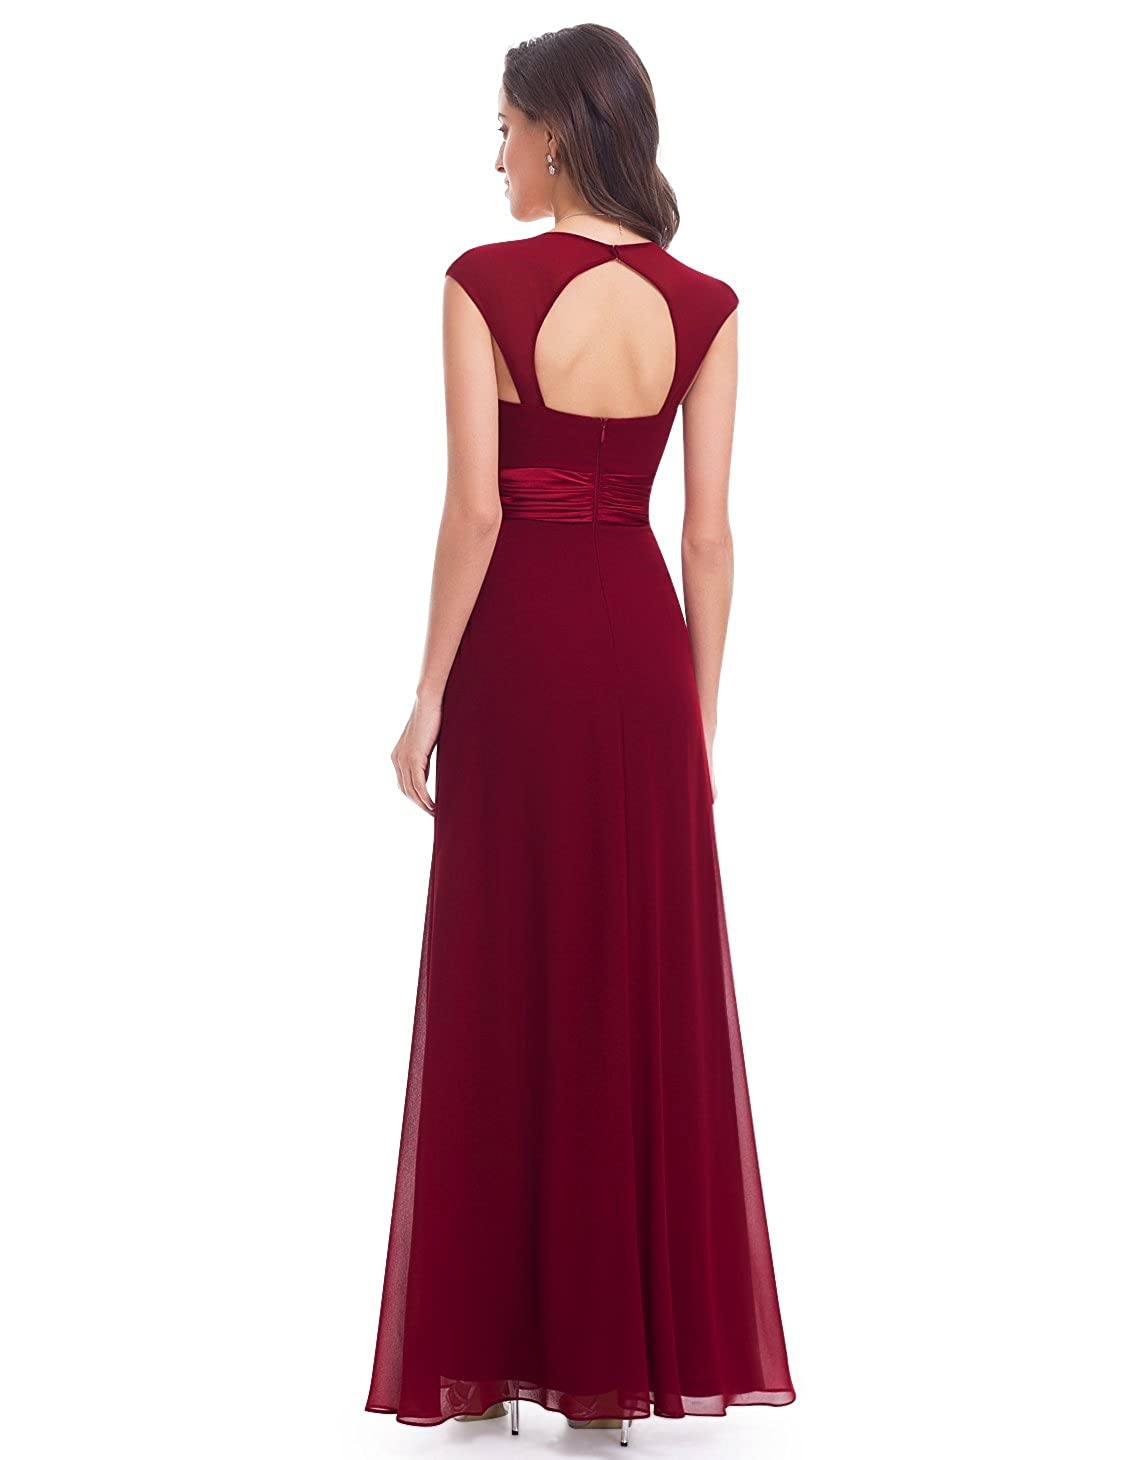 866a75f67ae53 Ever-Pretty Chiffon Sexy V-neck Ruched Empire Line Evening Dress 09672 at  Amazon Women s Clothing store